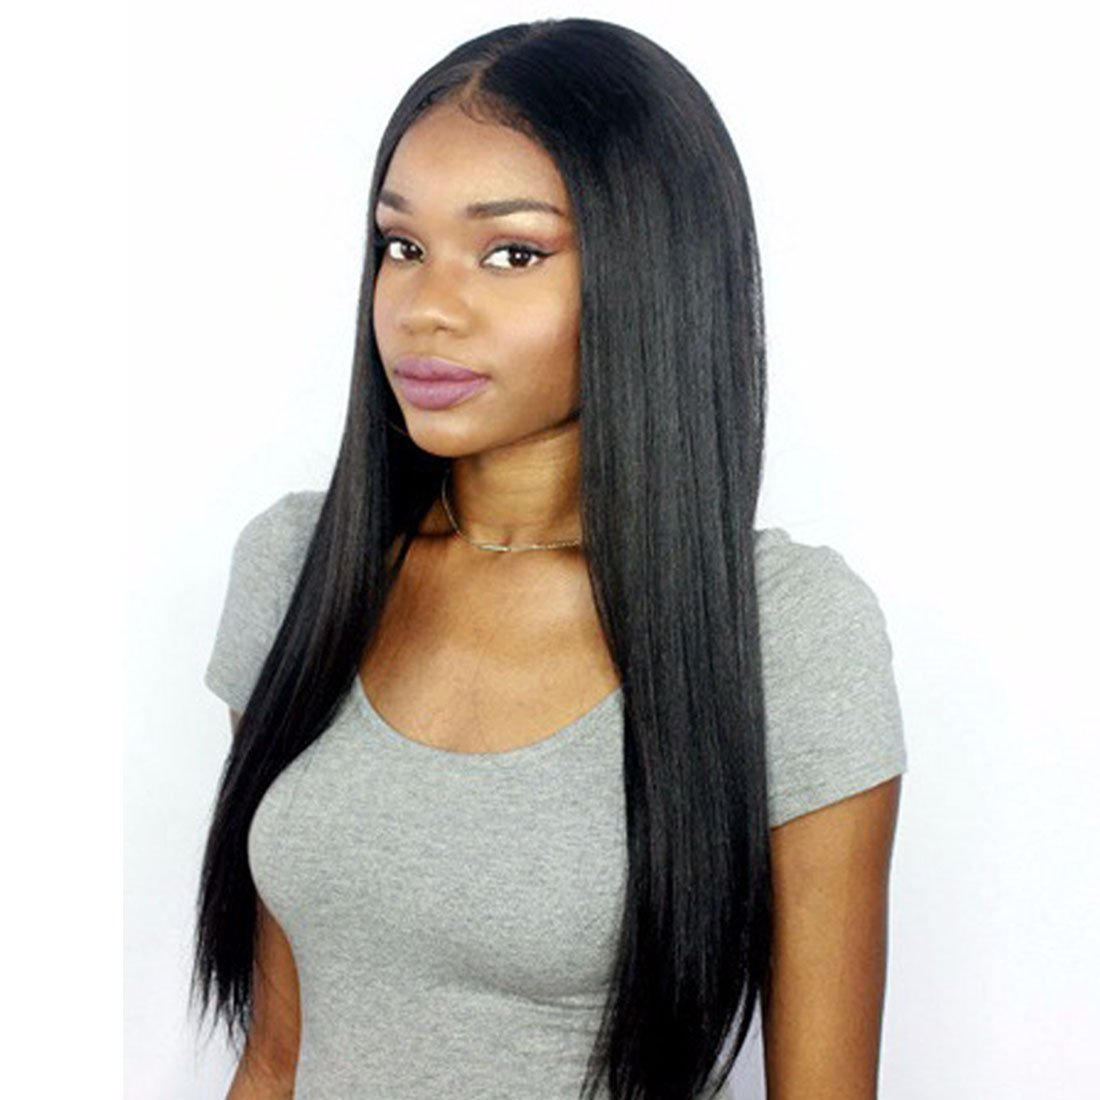 Premier 360 Lace Frontal Wigs Human Hair Brazilian Hair Wigs for Women Light Yaki Straight Long Human Hair 360 Full Lace Wig Pre Plucked Lace Wig with Baby Hair Natural Color 18 inches Free Part Wig by premier